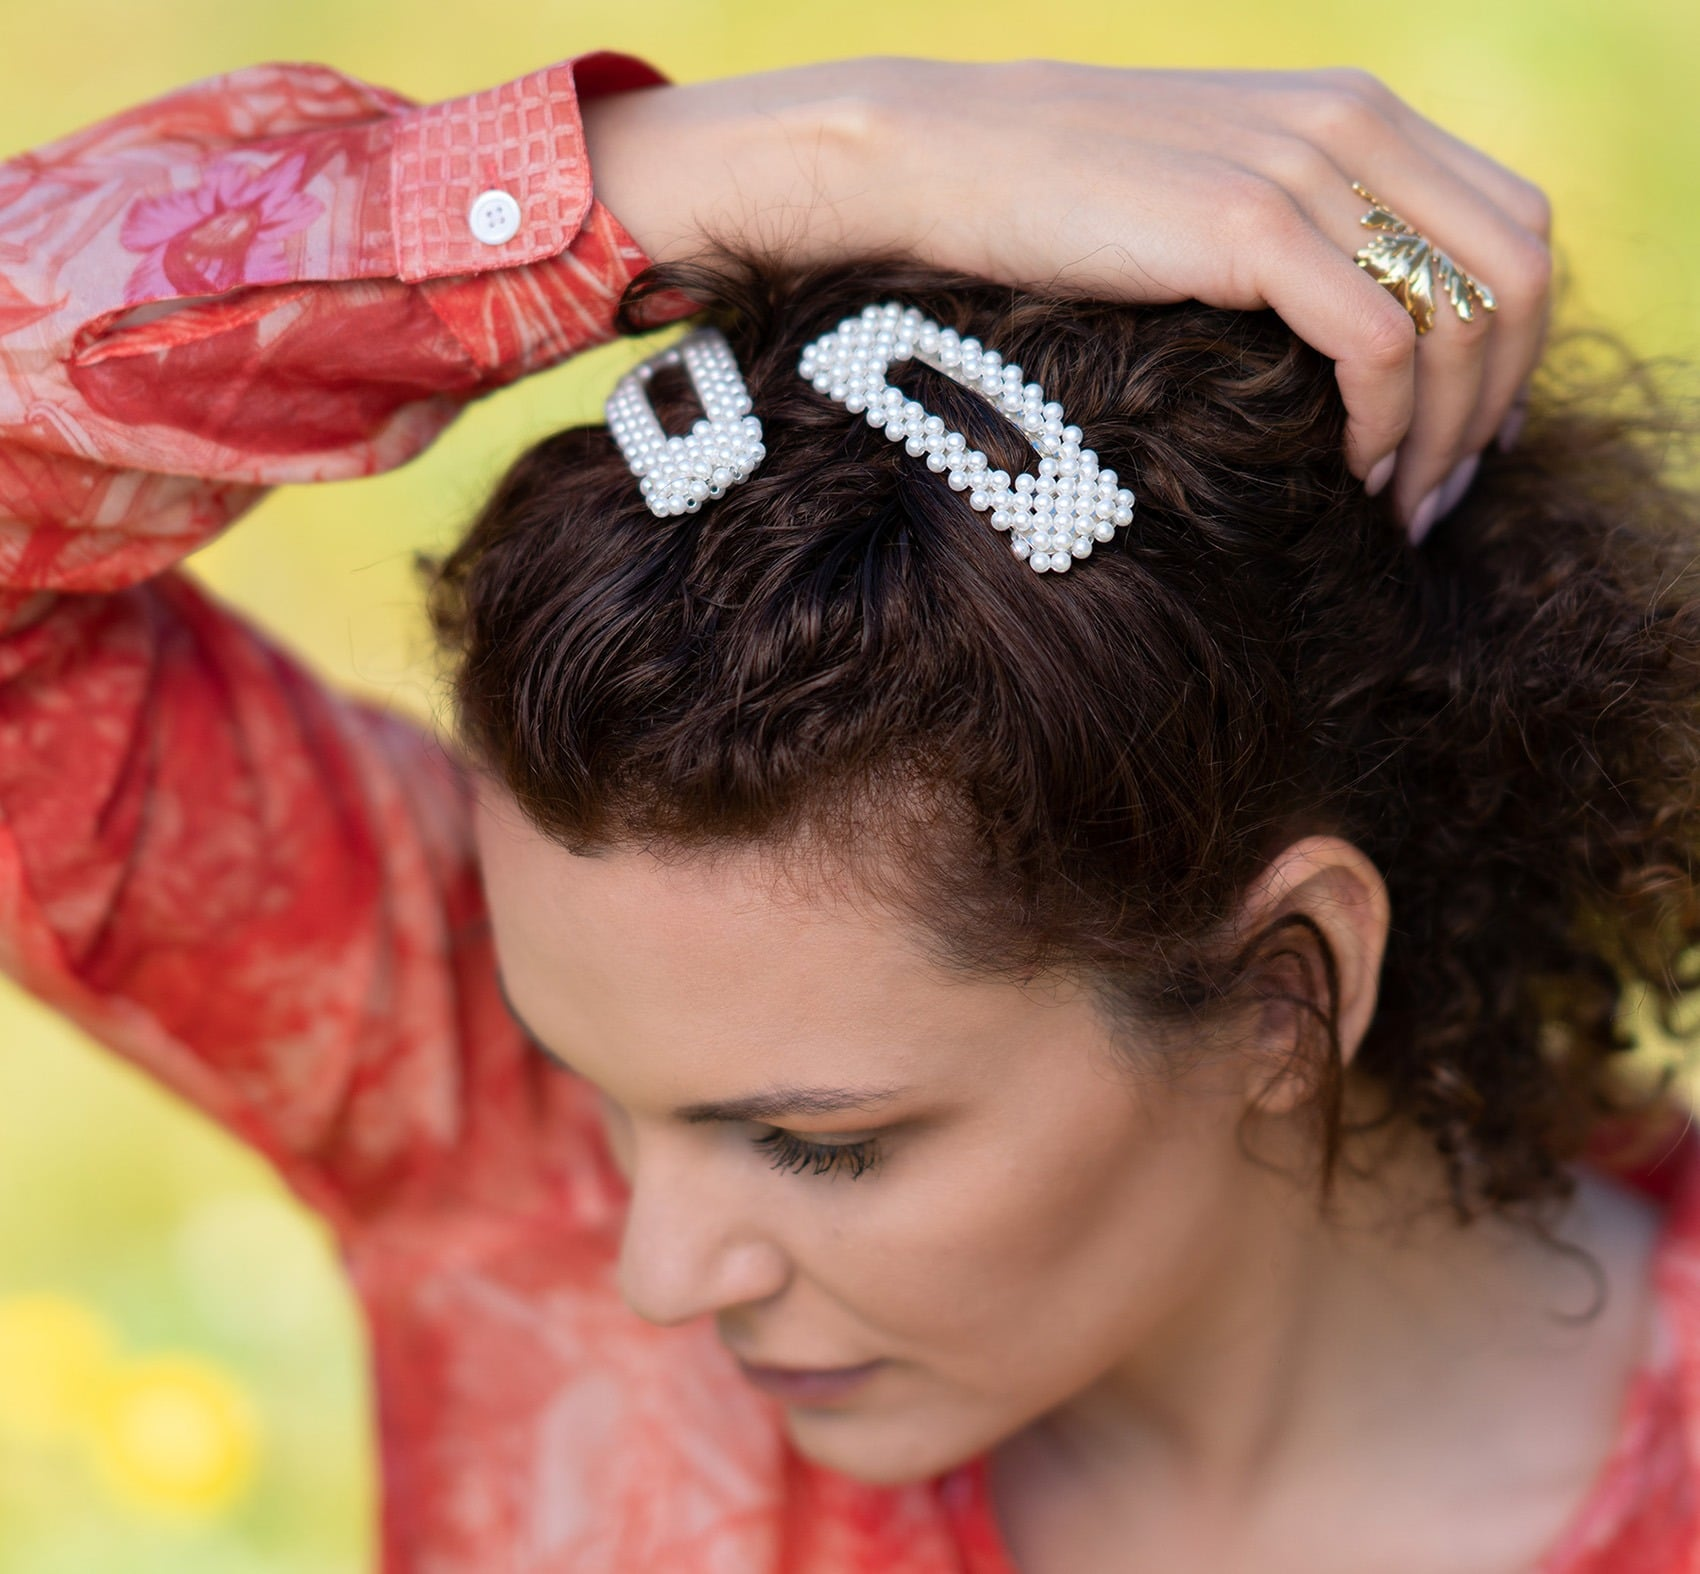 Hair clips with pearls